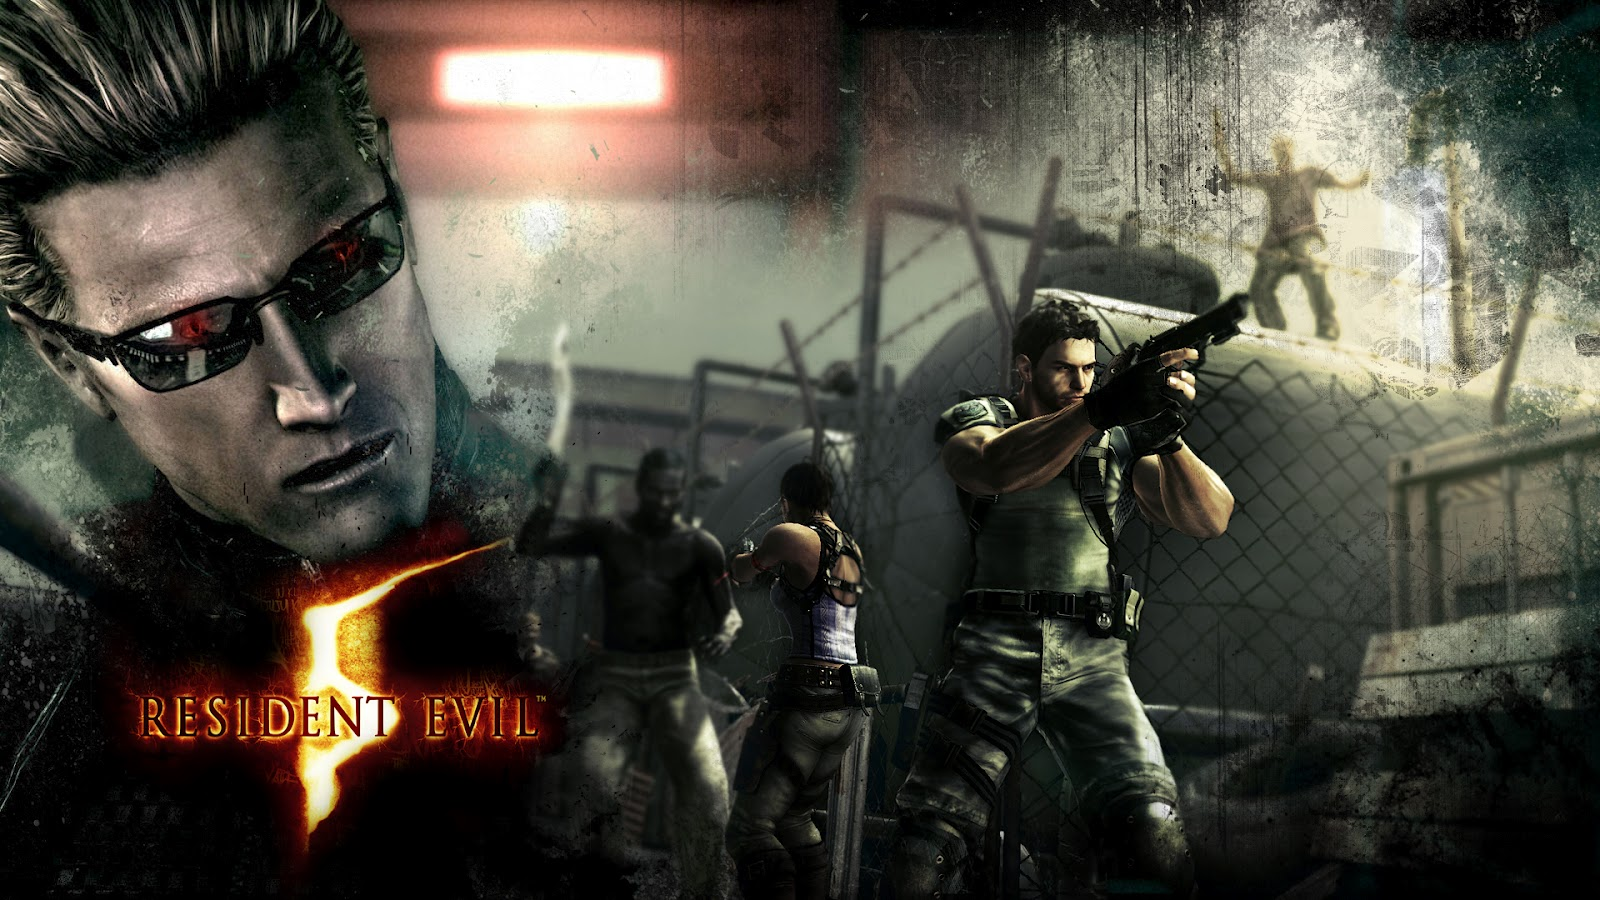 Killzone Shadow Fall Wallpaper 1920x1080 Wallpapers Hd Wallpapers Juego Resident Evil 4 Y 5 Hd